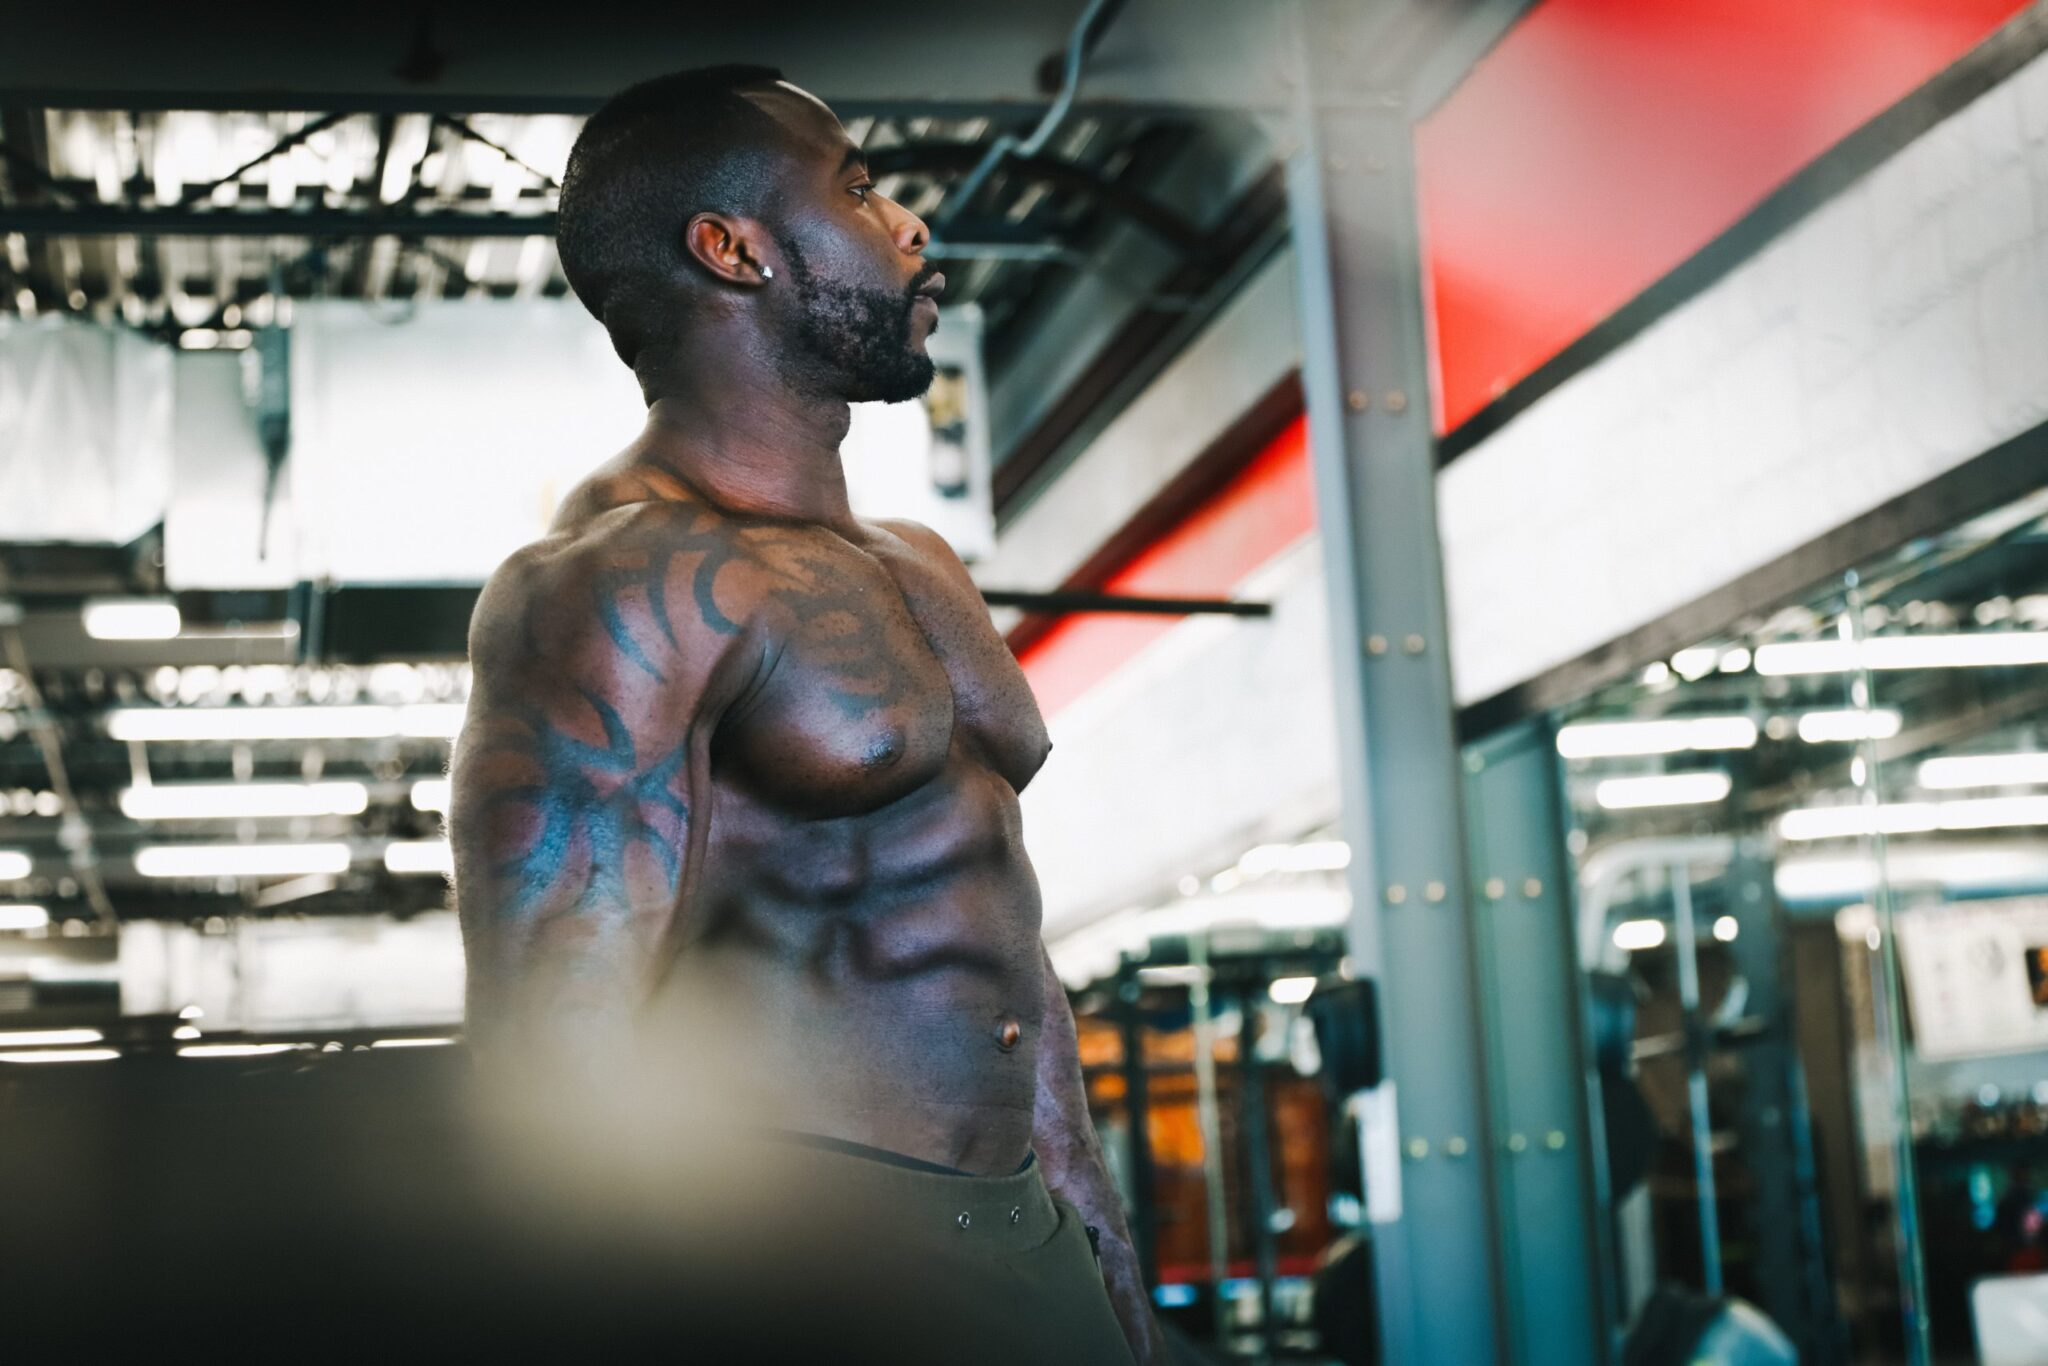 How Long Does It Take To Build Muscles?